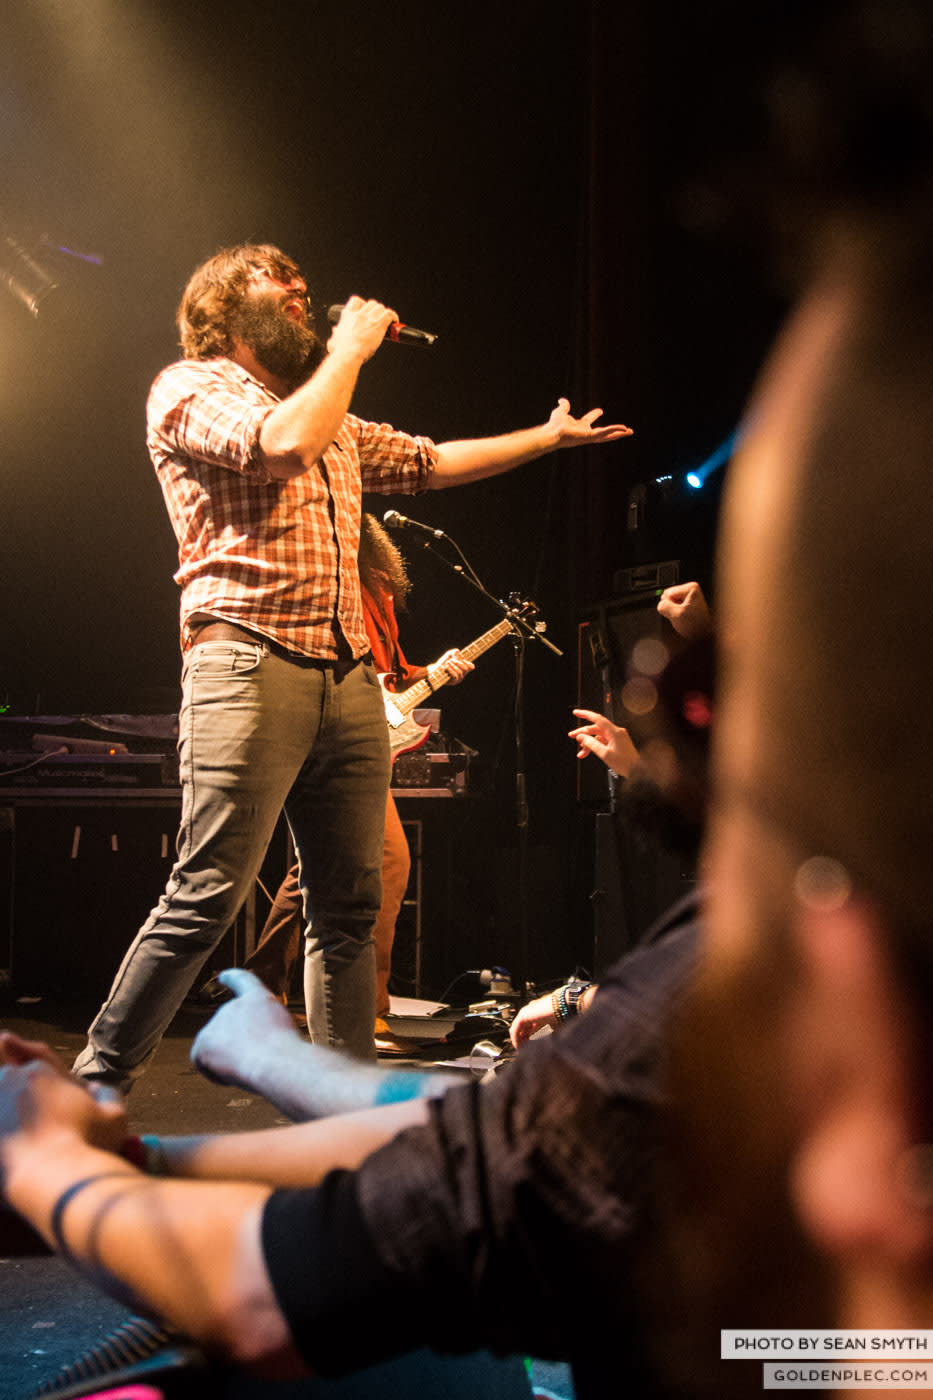 the-beards-at-button-factory-by-sean-smyth-10-12-14-35-of-49